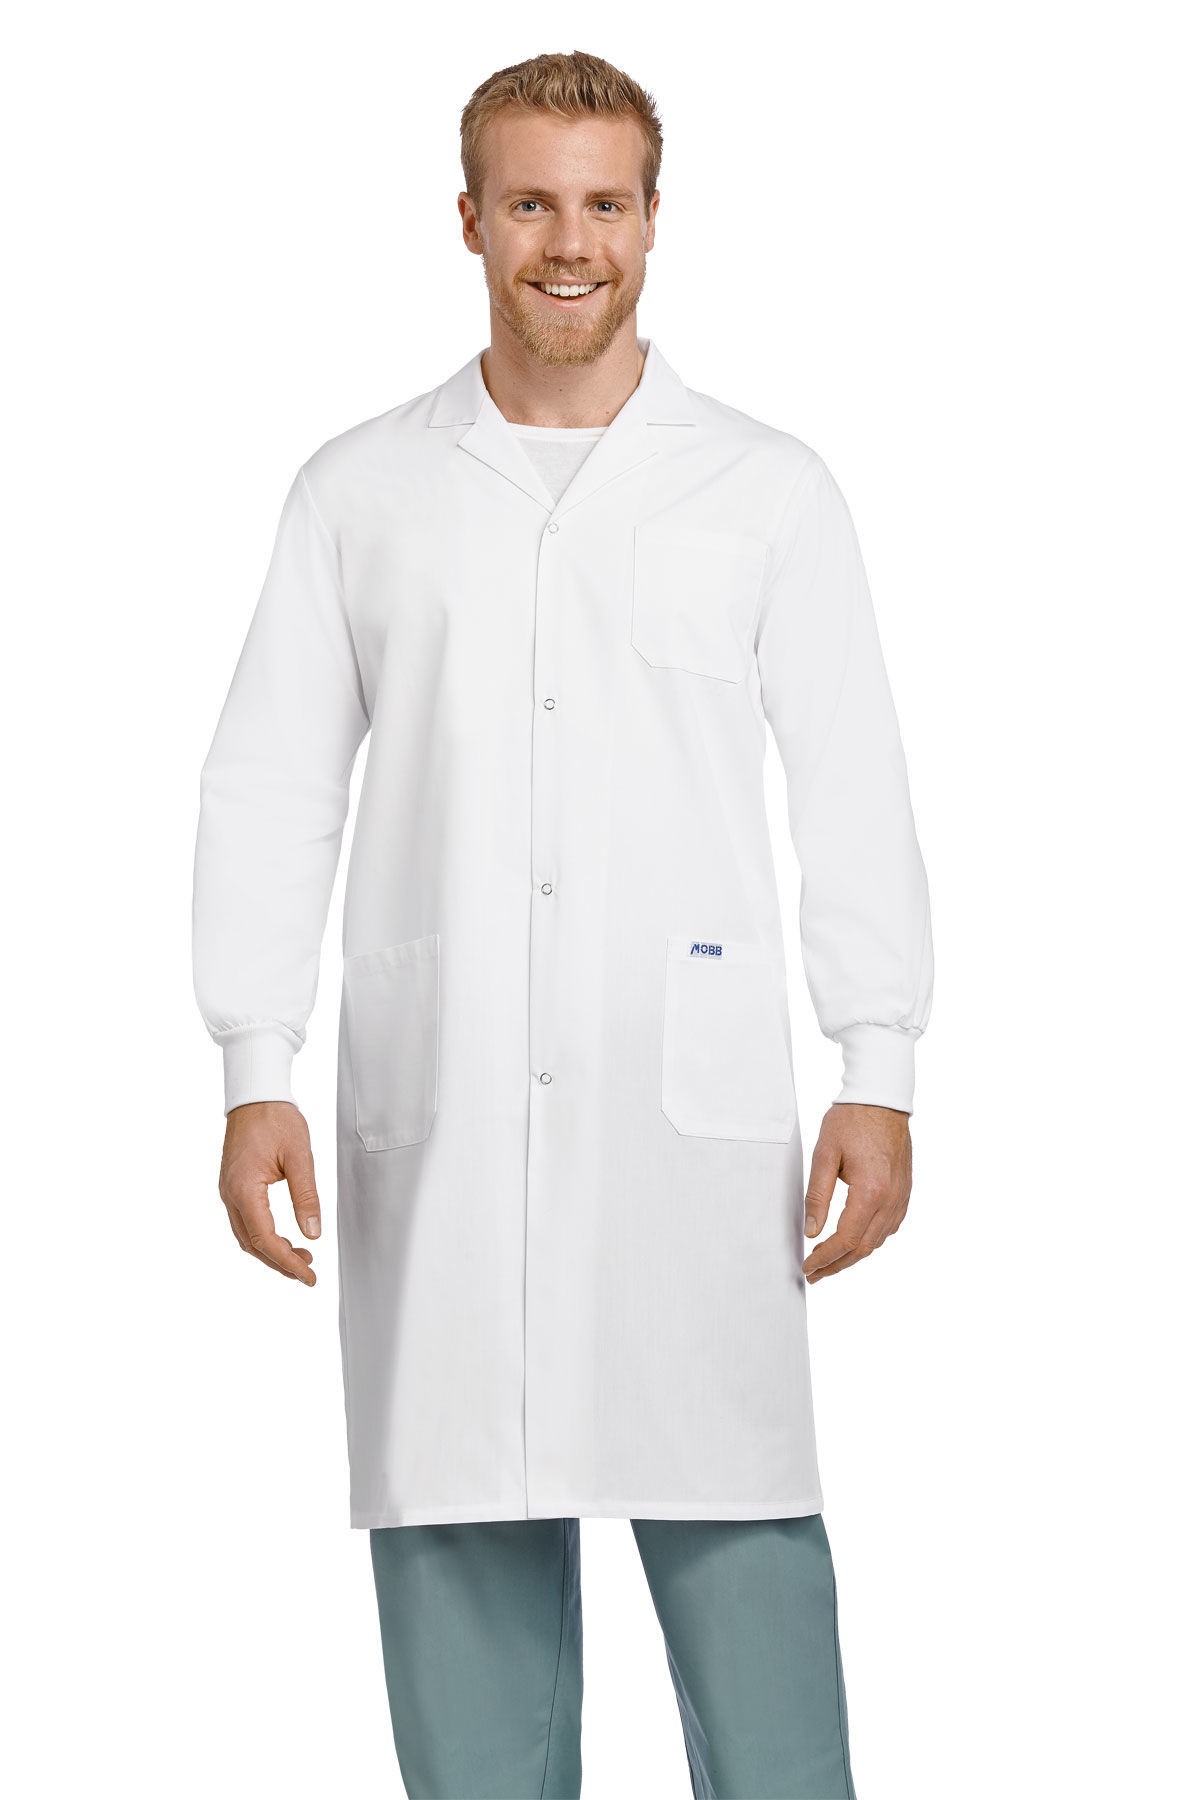 Picture of Full Length Unisex Snap Lab Coat With Knitted Cuffs - L507-XL